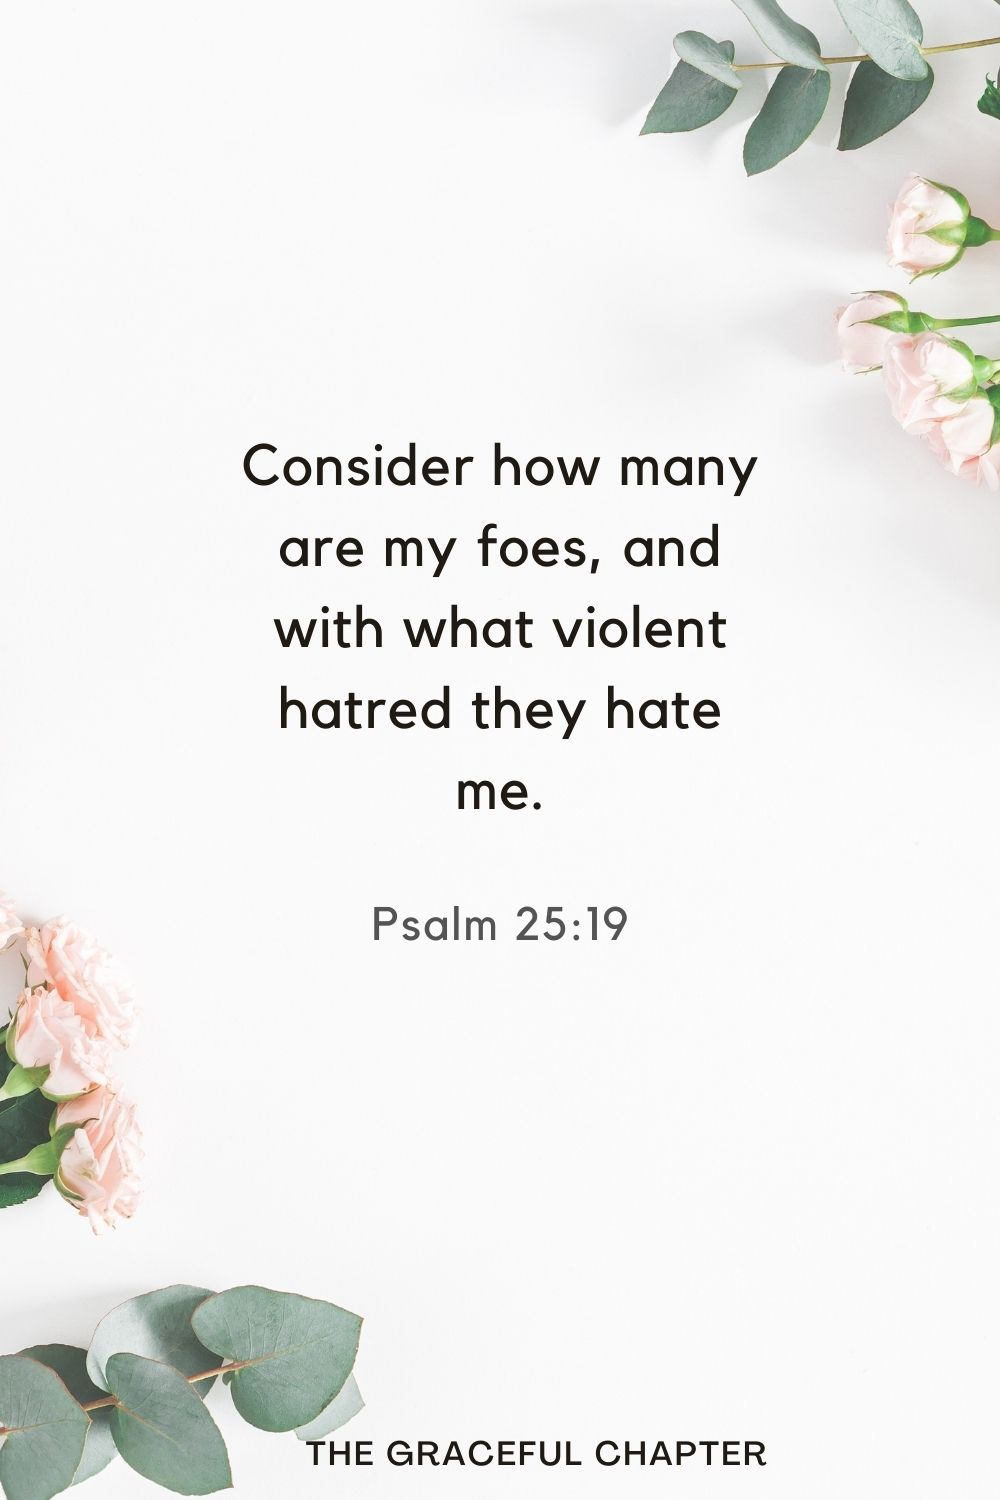 Consider how many are my foes, and with what violent hatred they hate me. Psalm 25:19